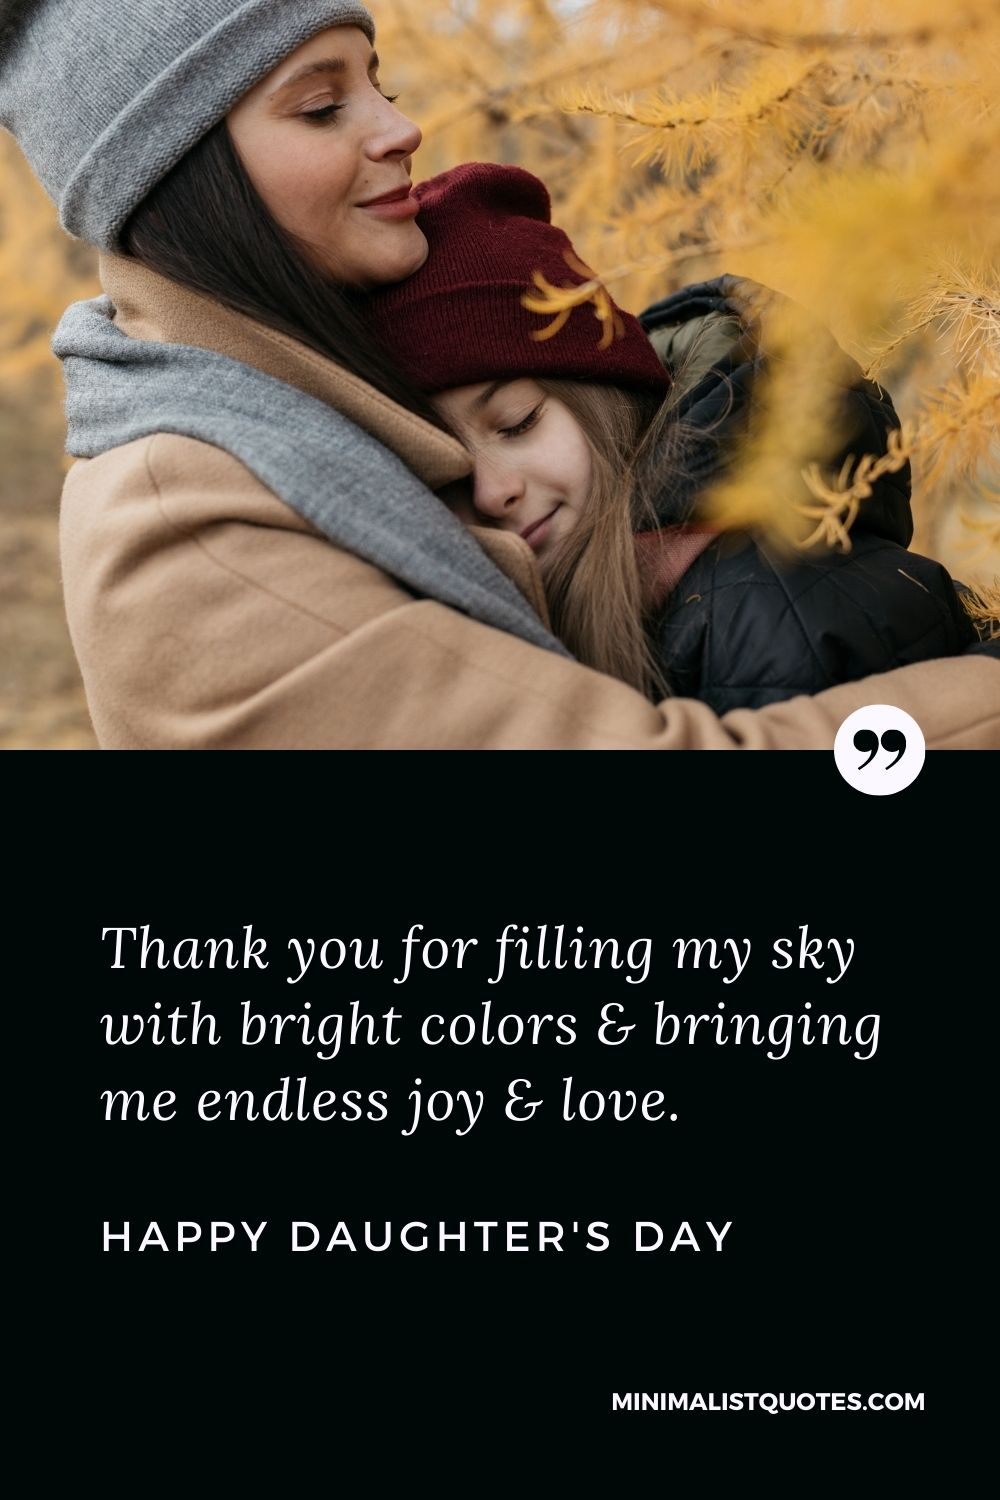 Daughter's Day Wish, Message & Quote With Image: Thank you for filling my sky with bright colors & bringing me endless joy & love. Happy Daughter's Day!